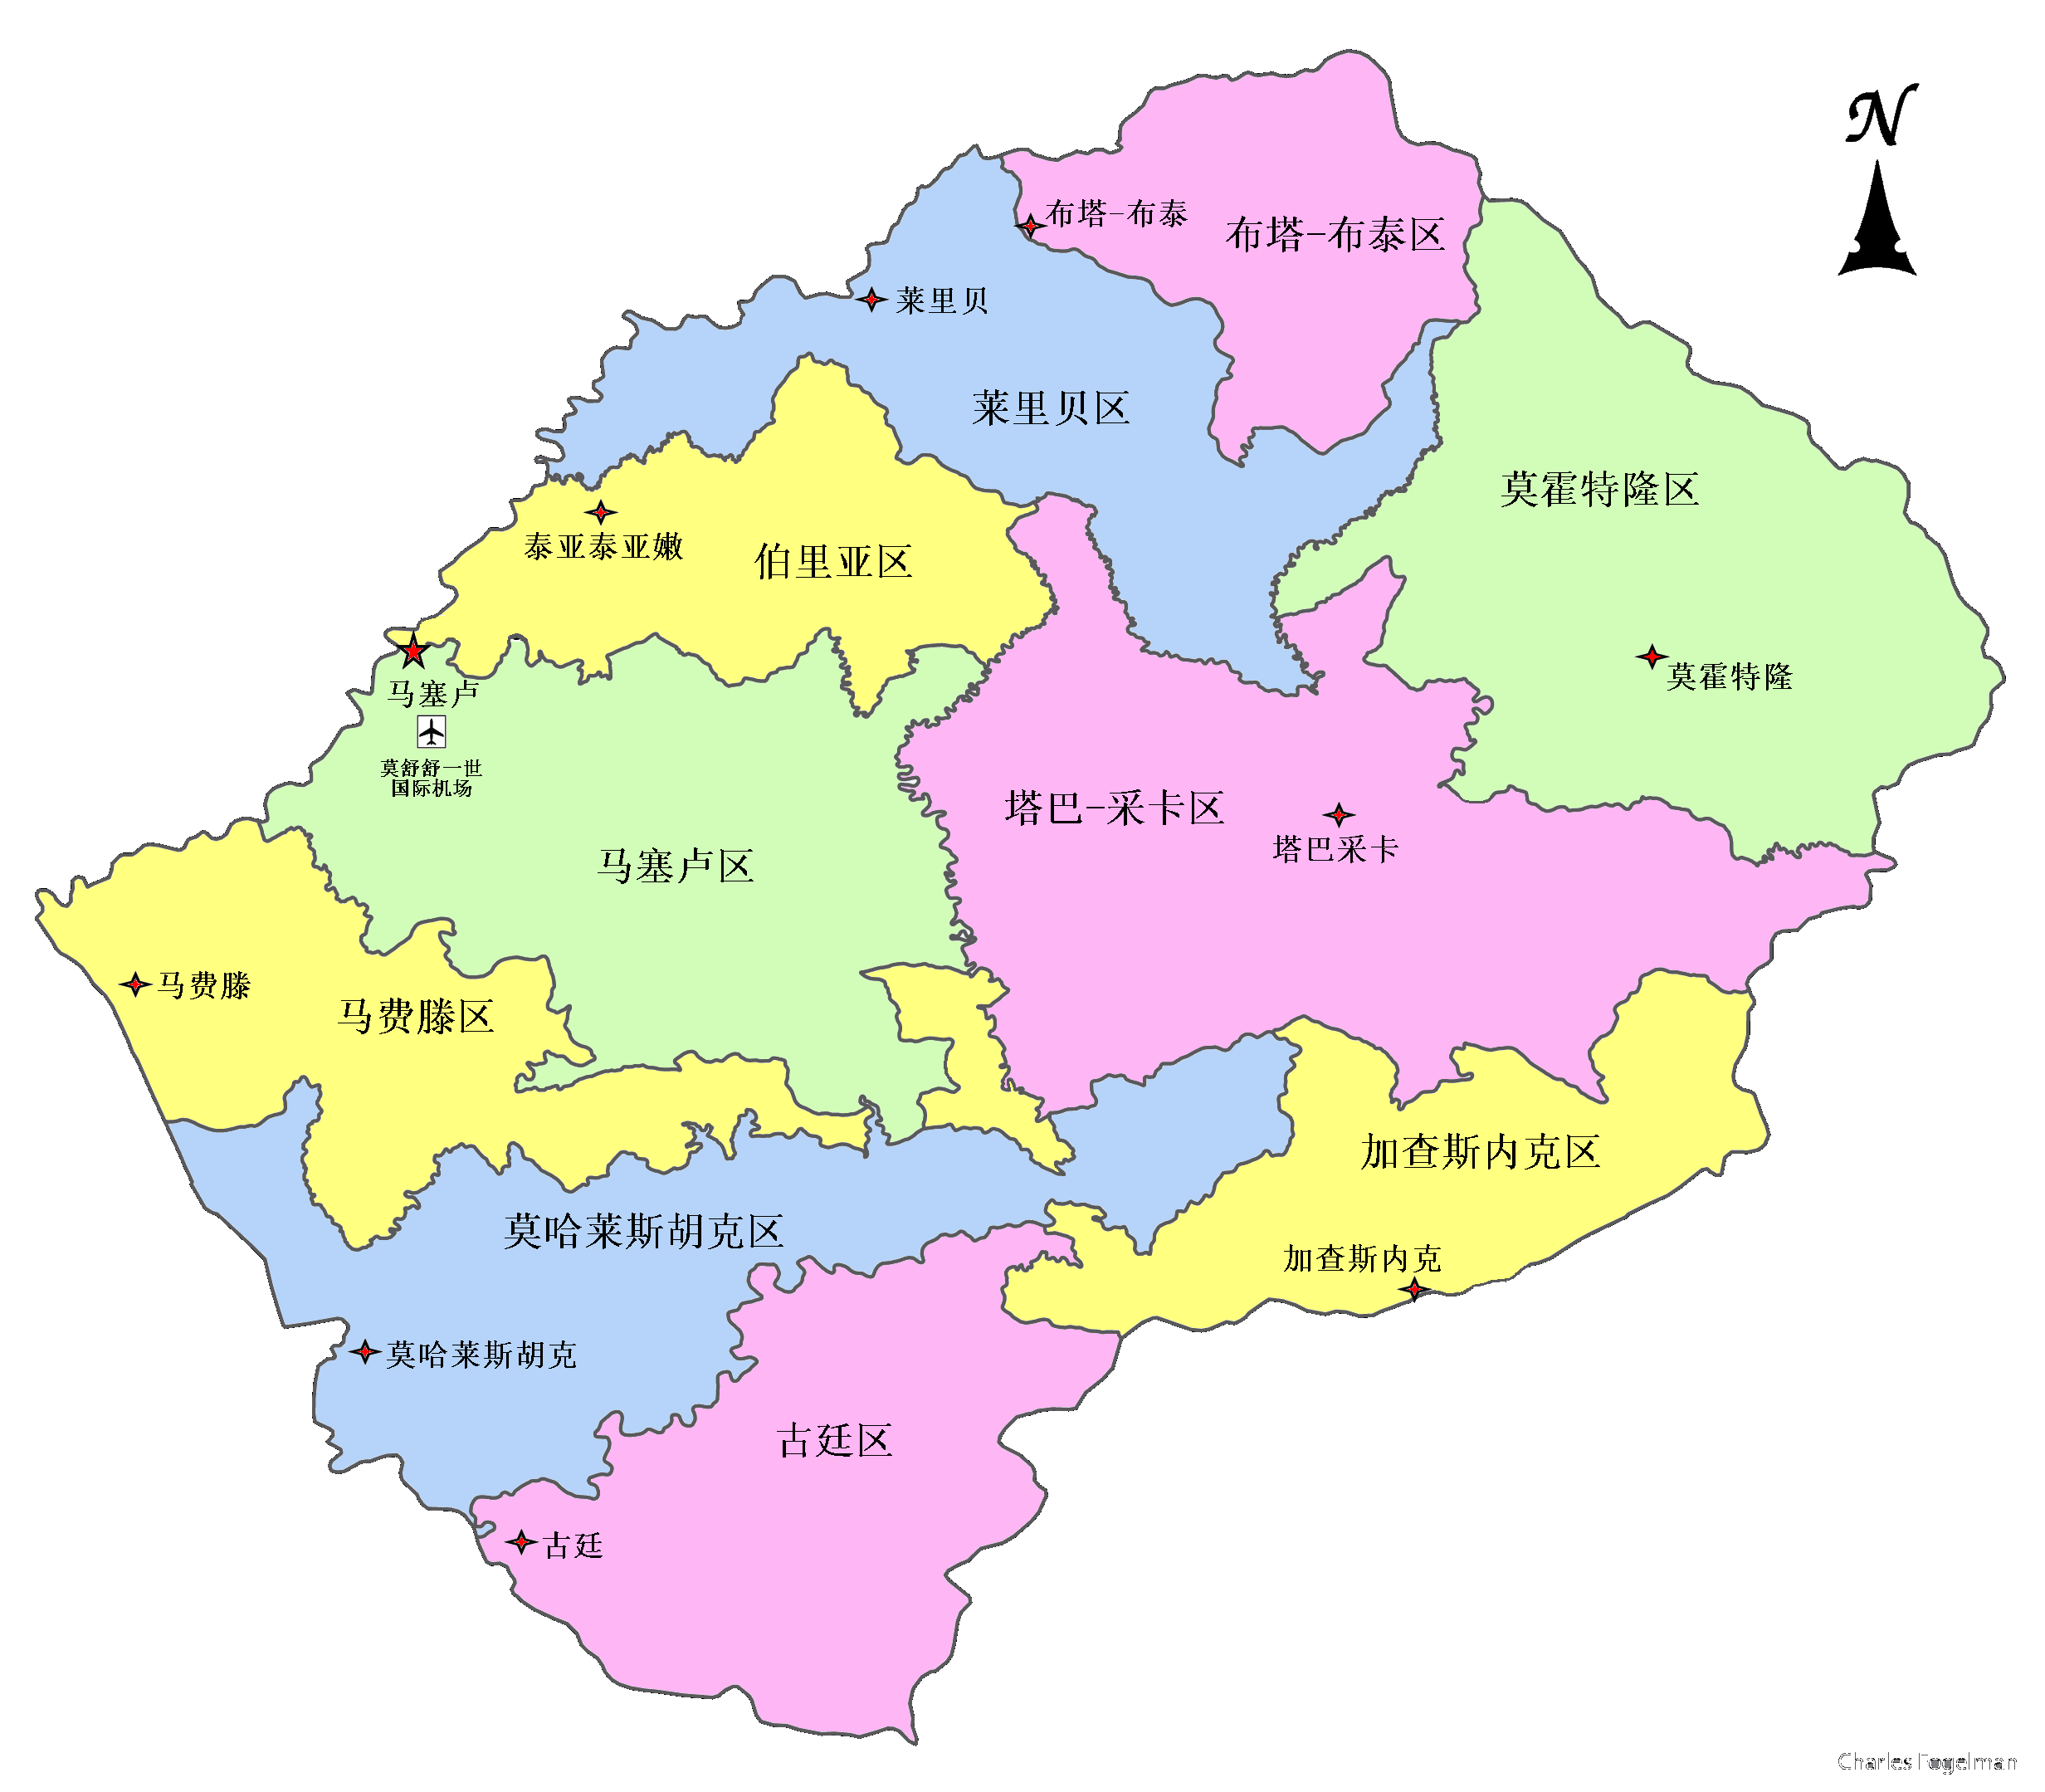 FileMap Of Lesothopng Wikimedia Commons - Lesotho map